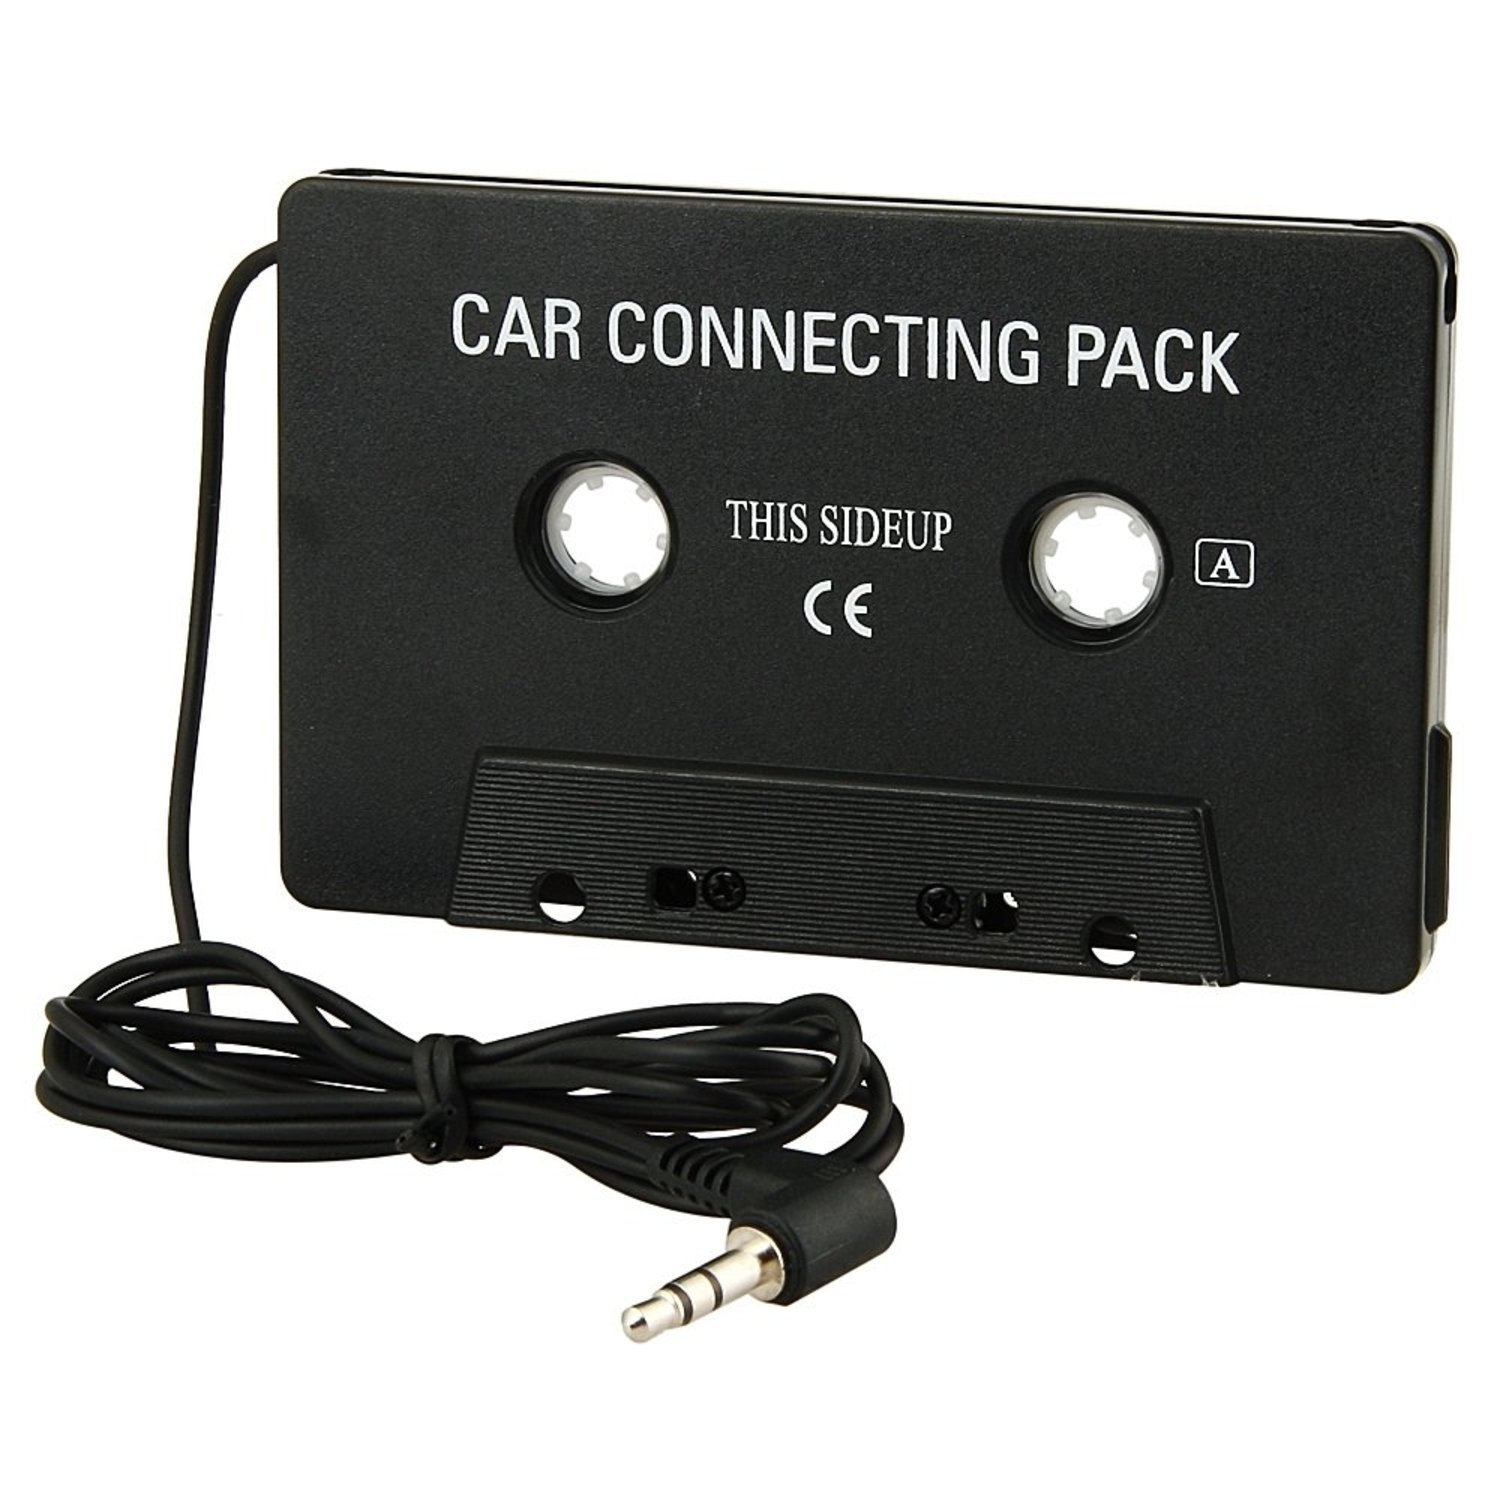 Cassette Adaptador Cinta Radio Coche Car Audio Adaptor Para Apple iPhone 5